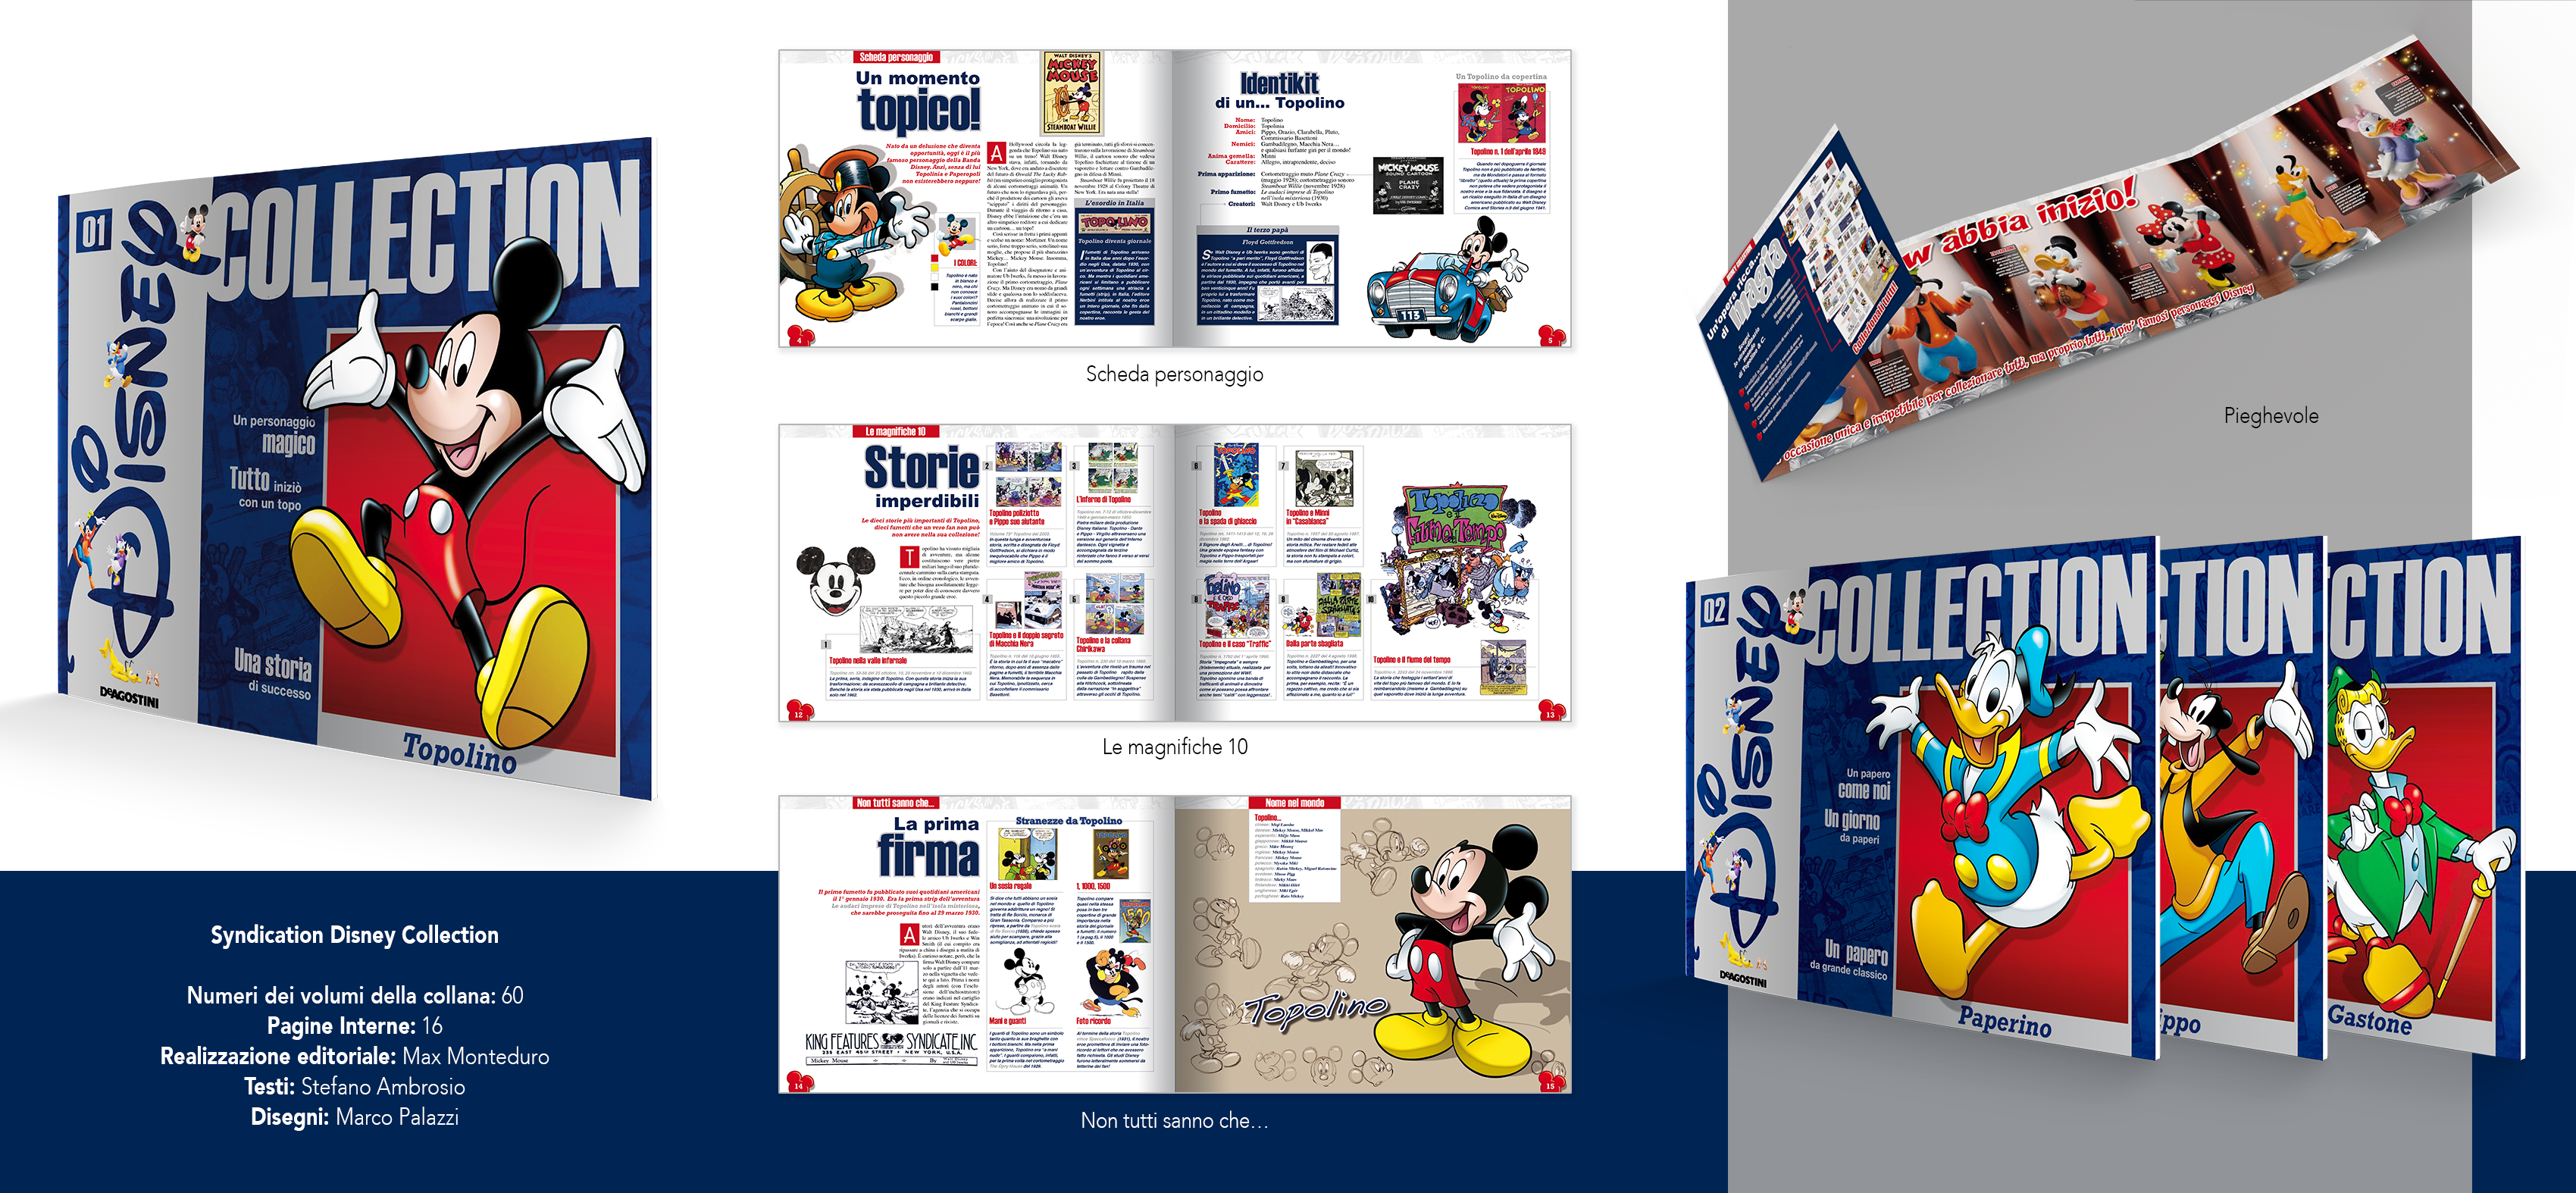 Disney Collection Syndication